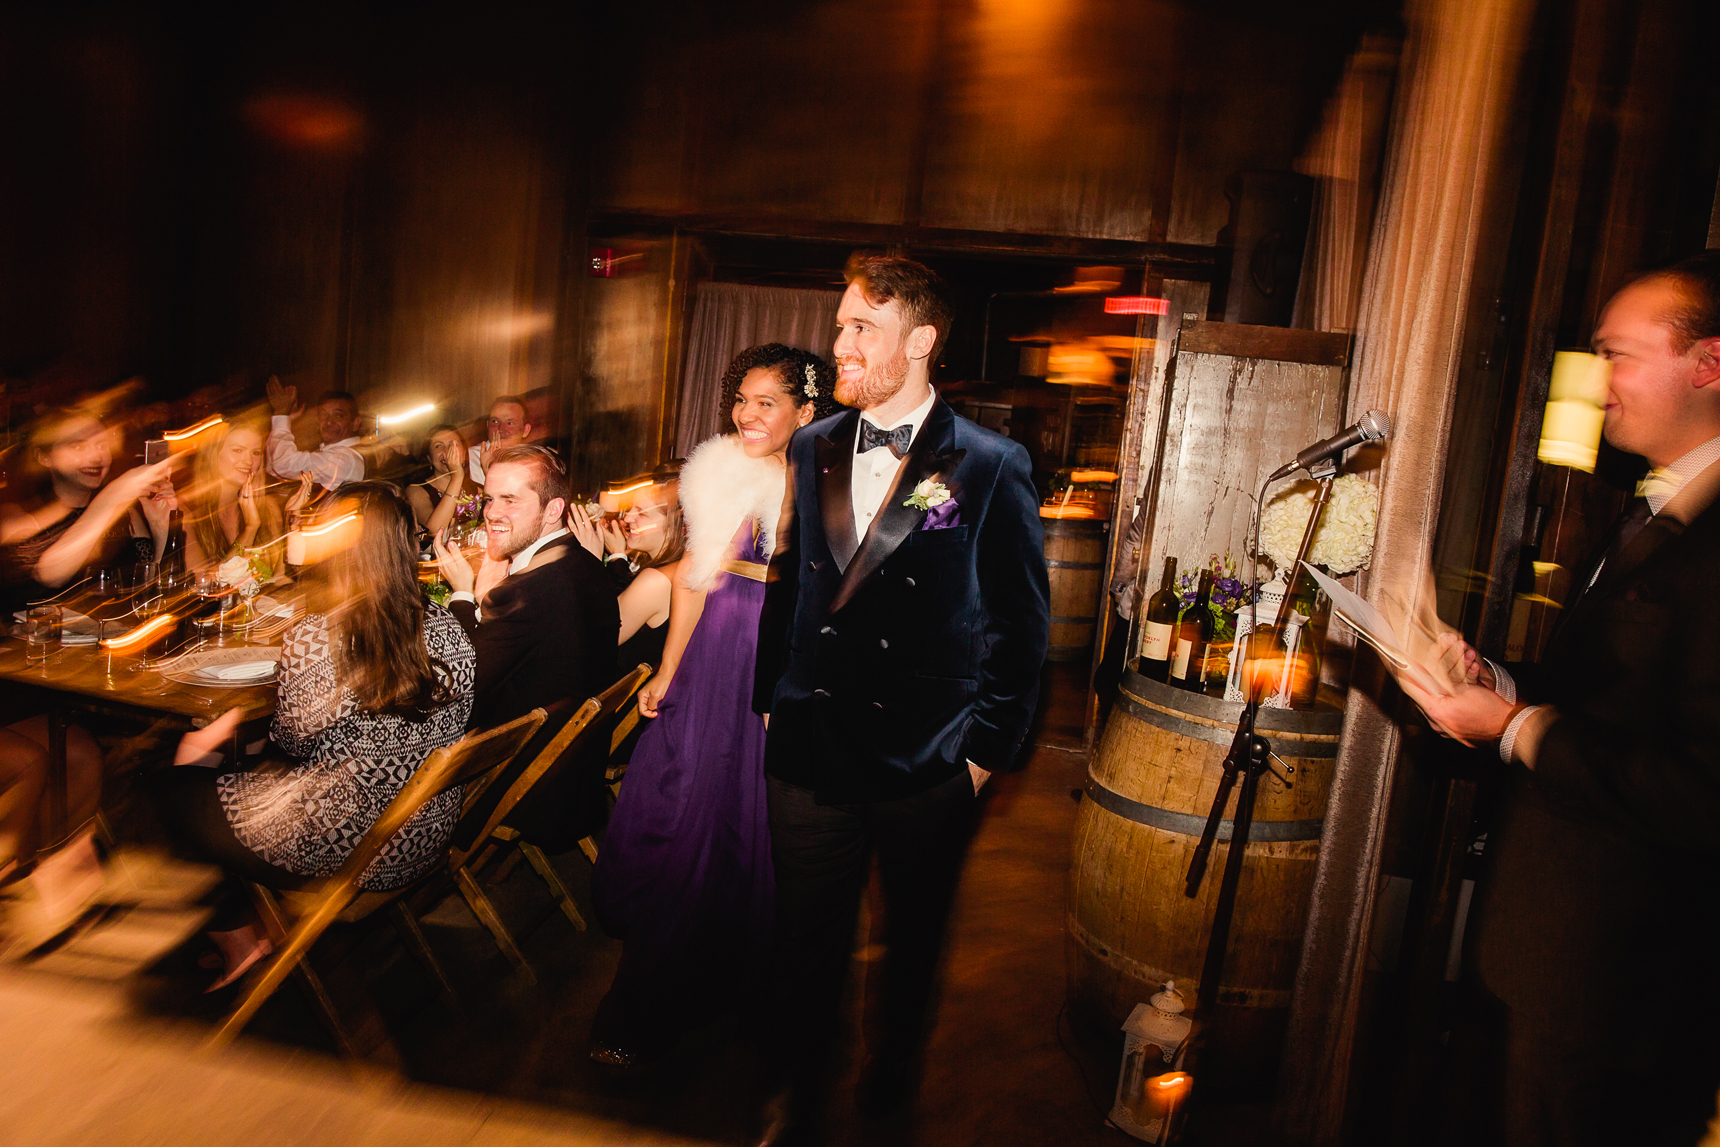 KP_BrooklynWinery_Wedding_NewYork_Photographer107.jpg